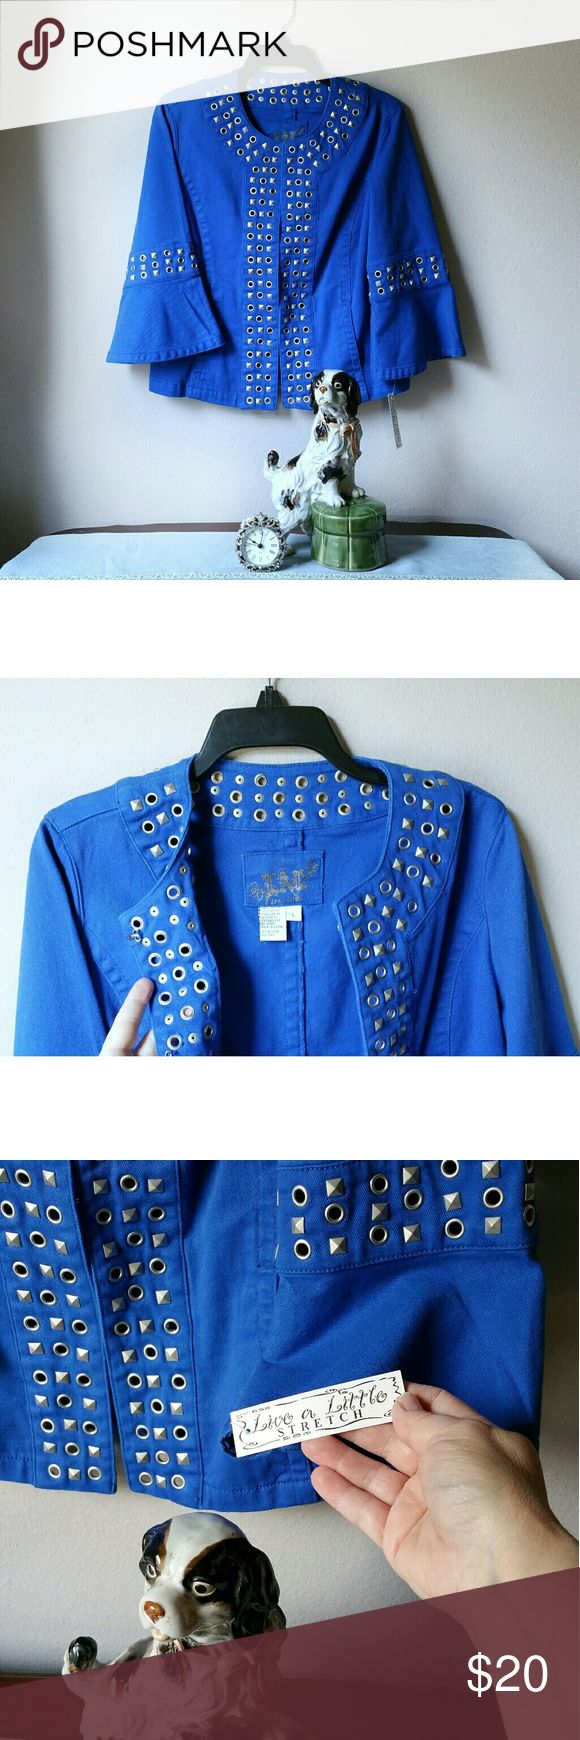 Live a Little  Royal Blue Jacket Gorgeous Royal blue Jacket with grommet and stud adorned. 97% cotton  3% spandex  New w/t LIVE A LITTLE Jackets & Coats Jean Jackets